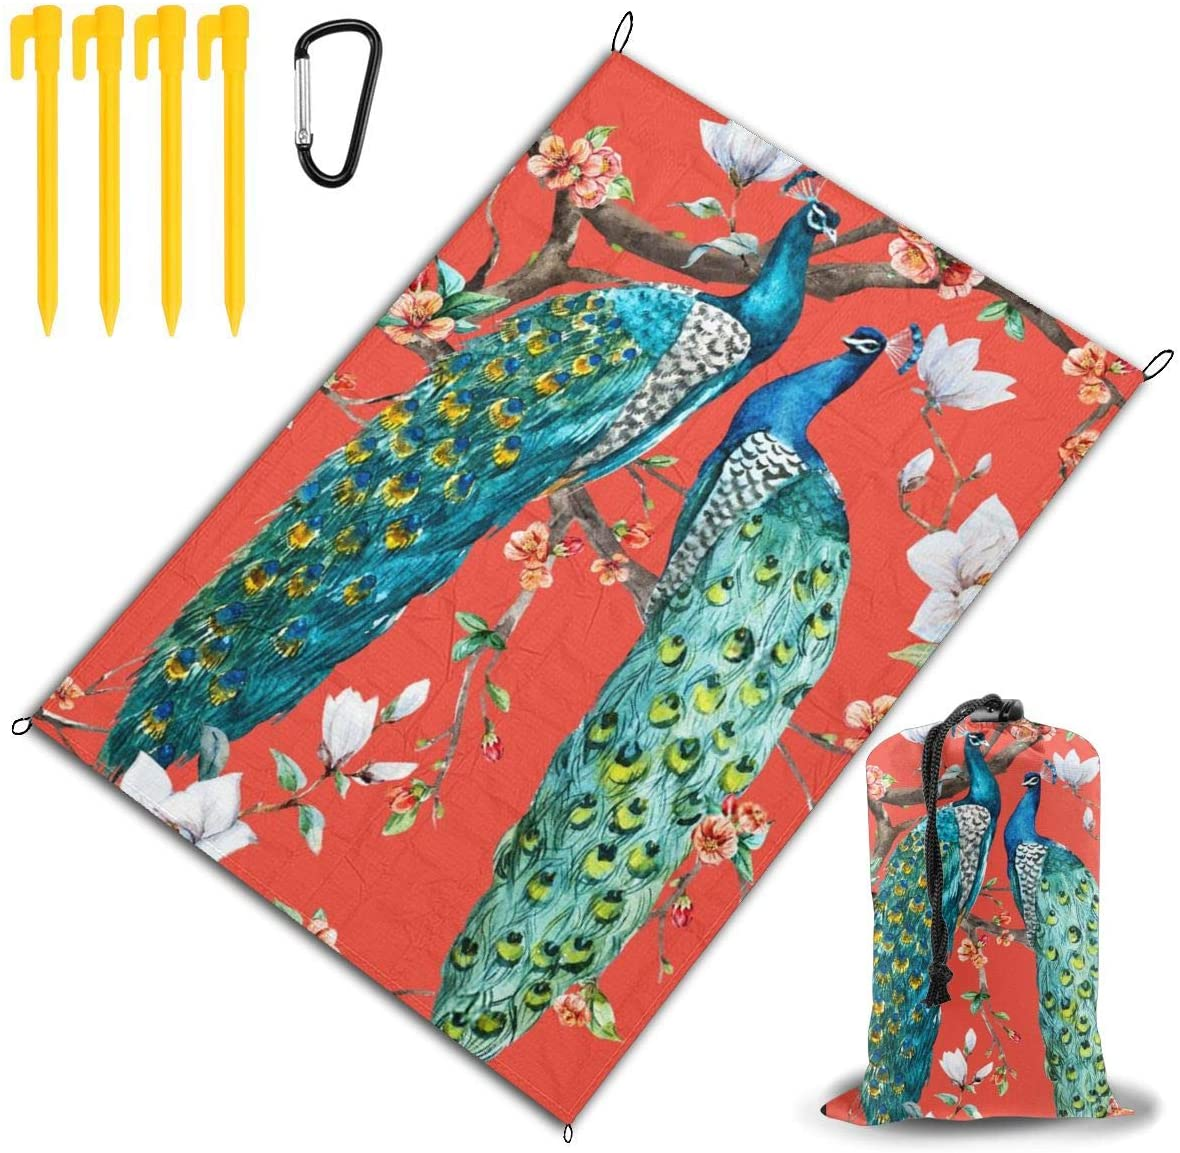 THONFIRE Beach Picnic Blanket Peacock Lover Blooming Cherry Waterproof Extra Large Outdoor Handy Mat Sand Proof Camping Travel Accessories Folding Family Tote On Lawn Outings Quick Dry Bag